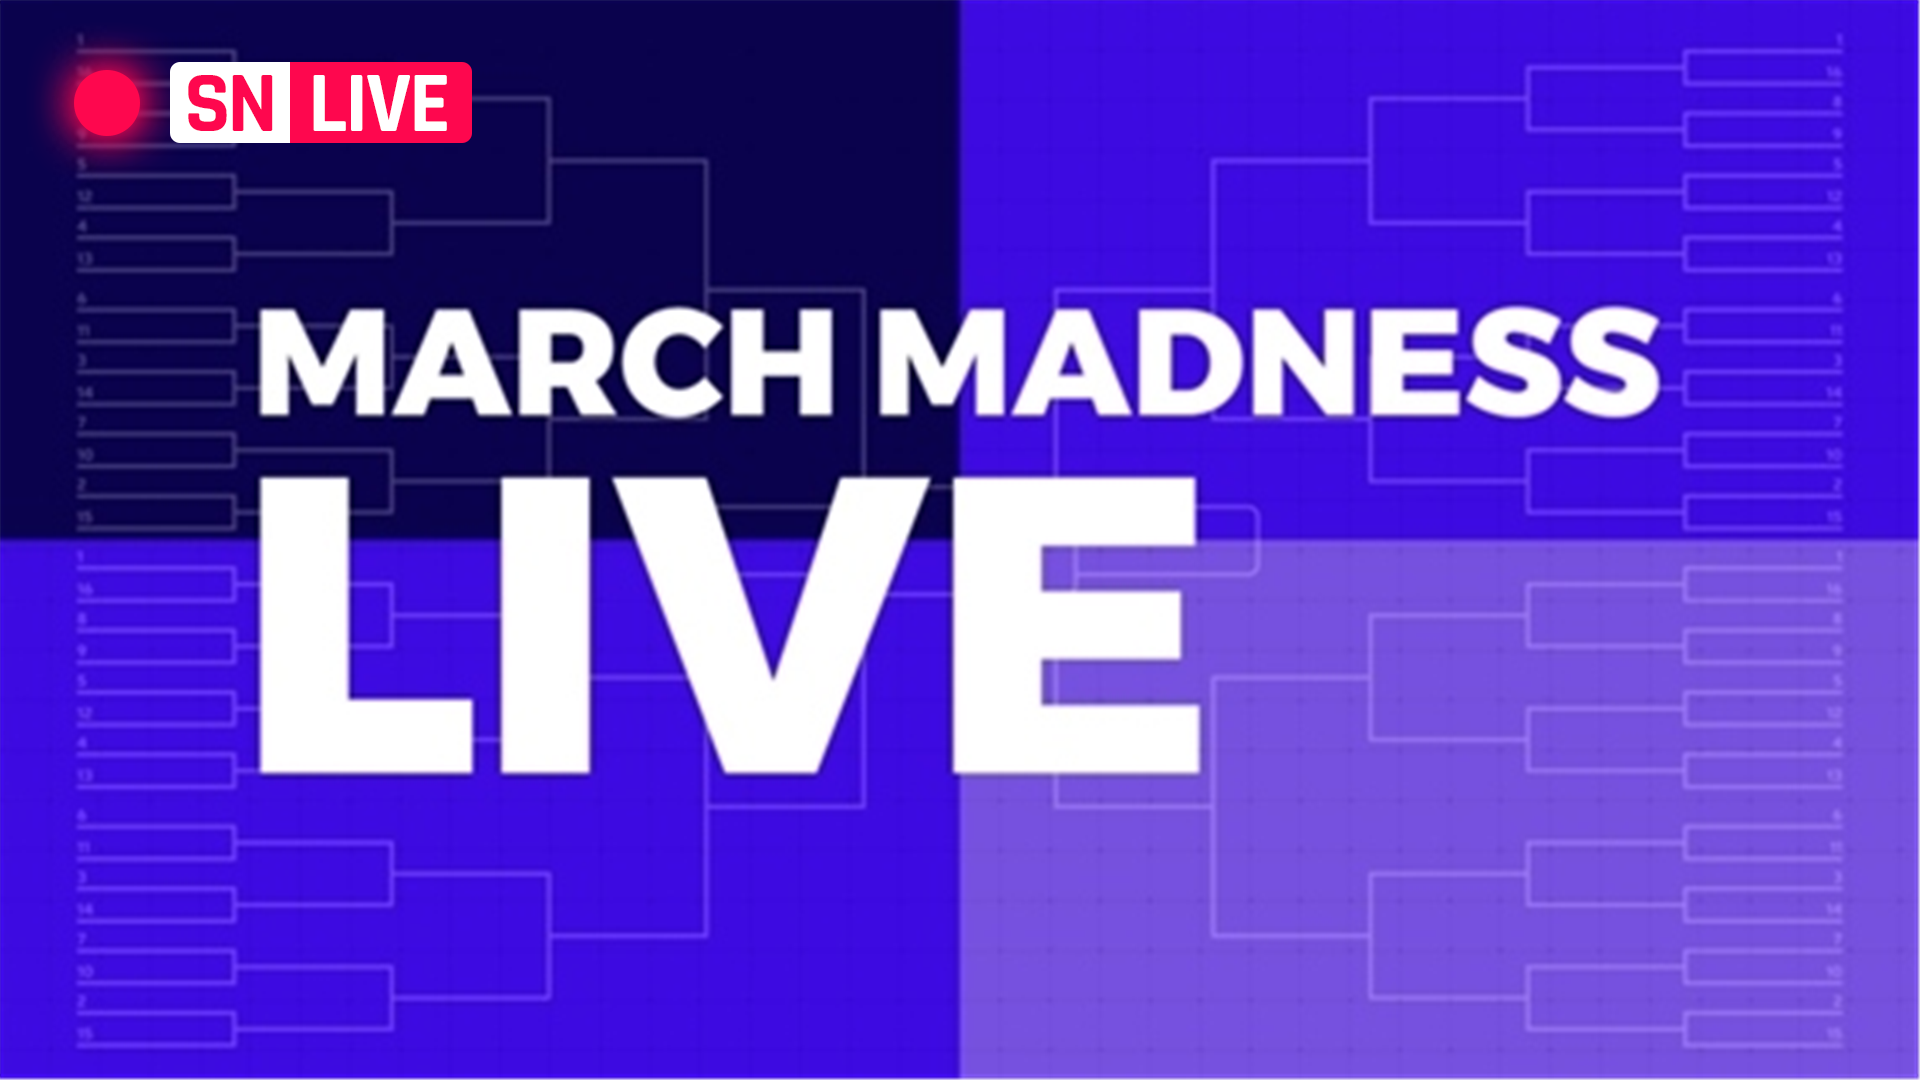 March Madness live bracket: Full schedule, scores, how to